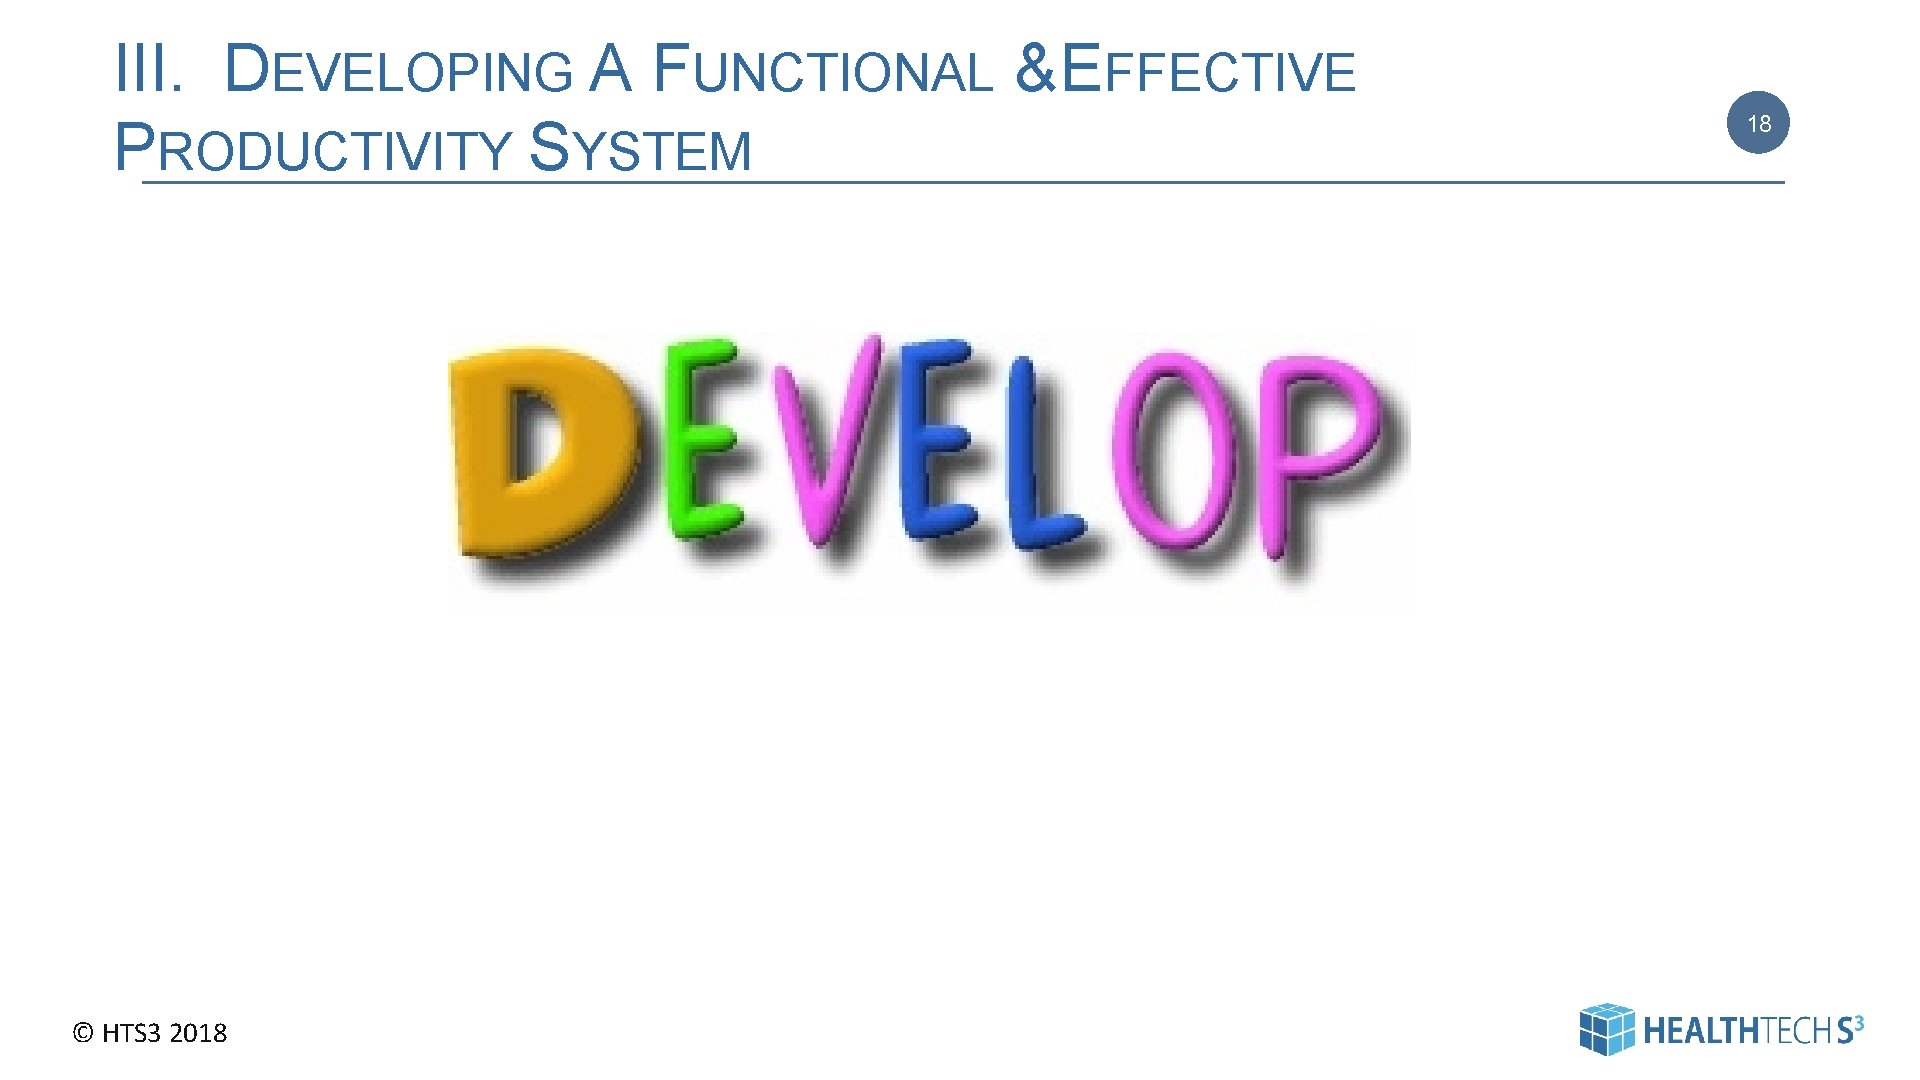 III. DEVELOPING A FUNCTIONAL & EFFECTIVE PRODUCTIVITY SYSTEM © HTS 3 2018 18 18